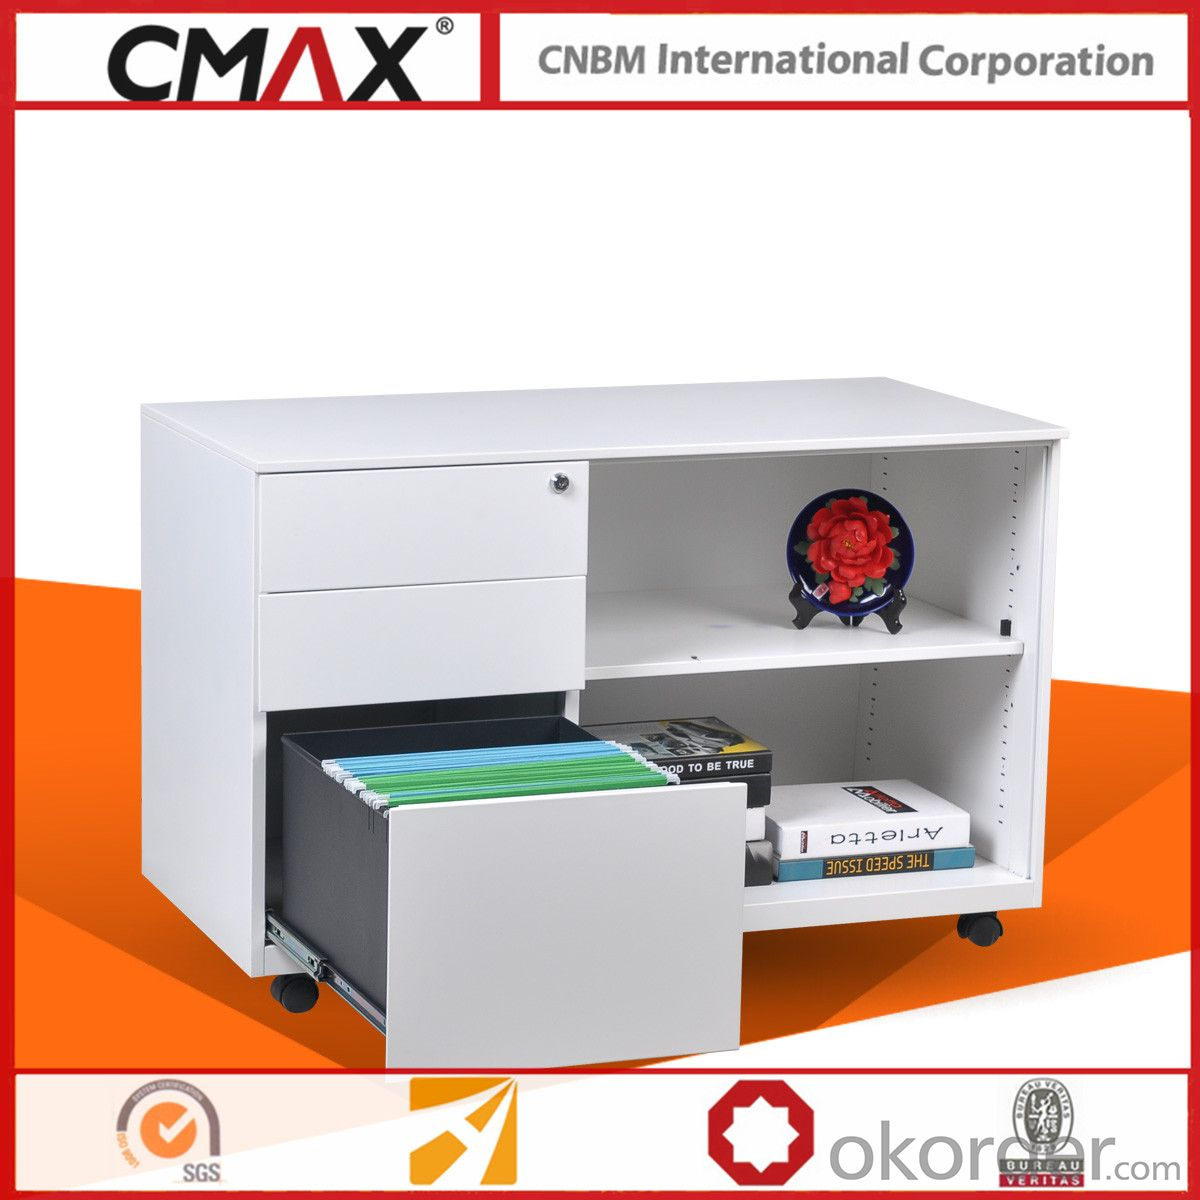 Bunnings Metal Racking Buy Office Steel Mobile Caddy Cabinet Cmax Osr Bbf Price